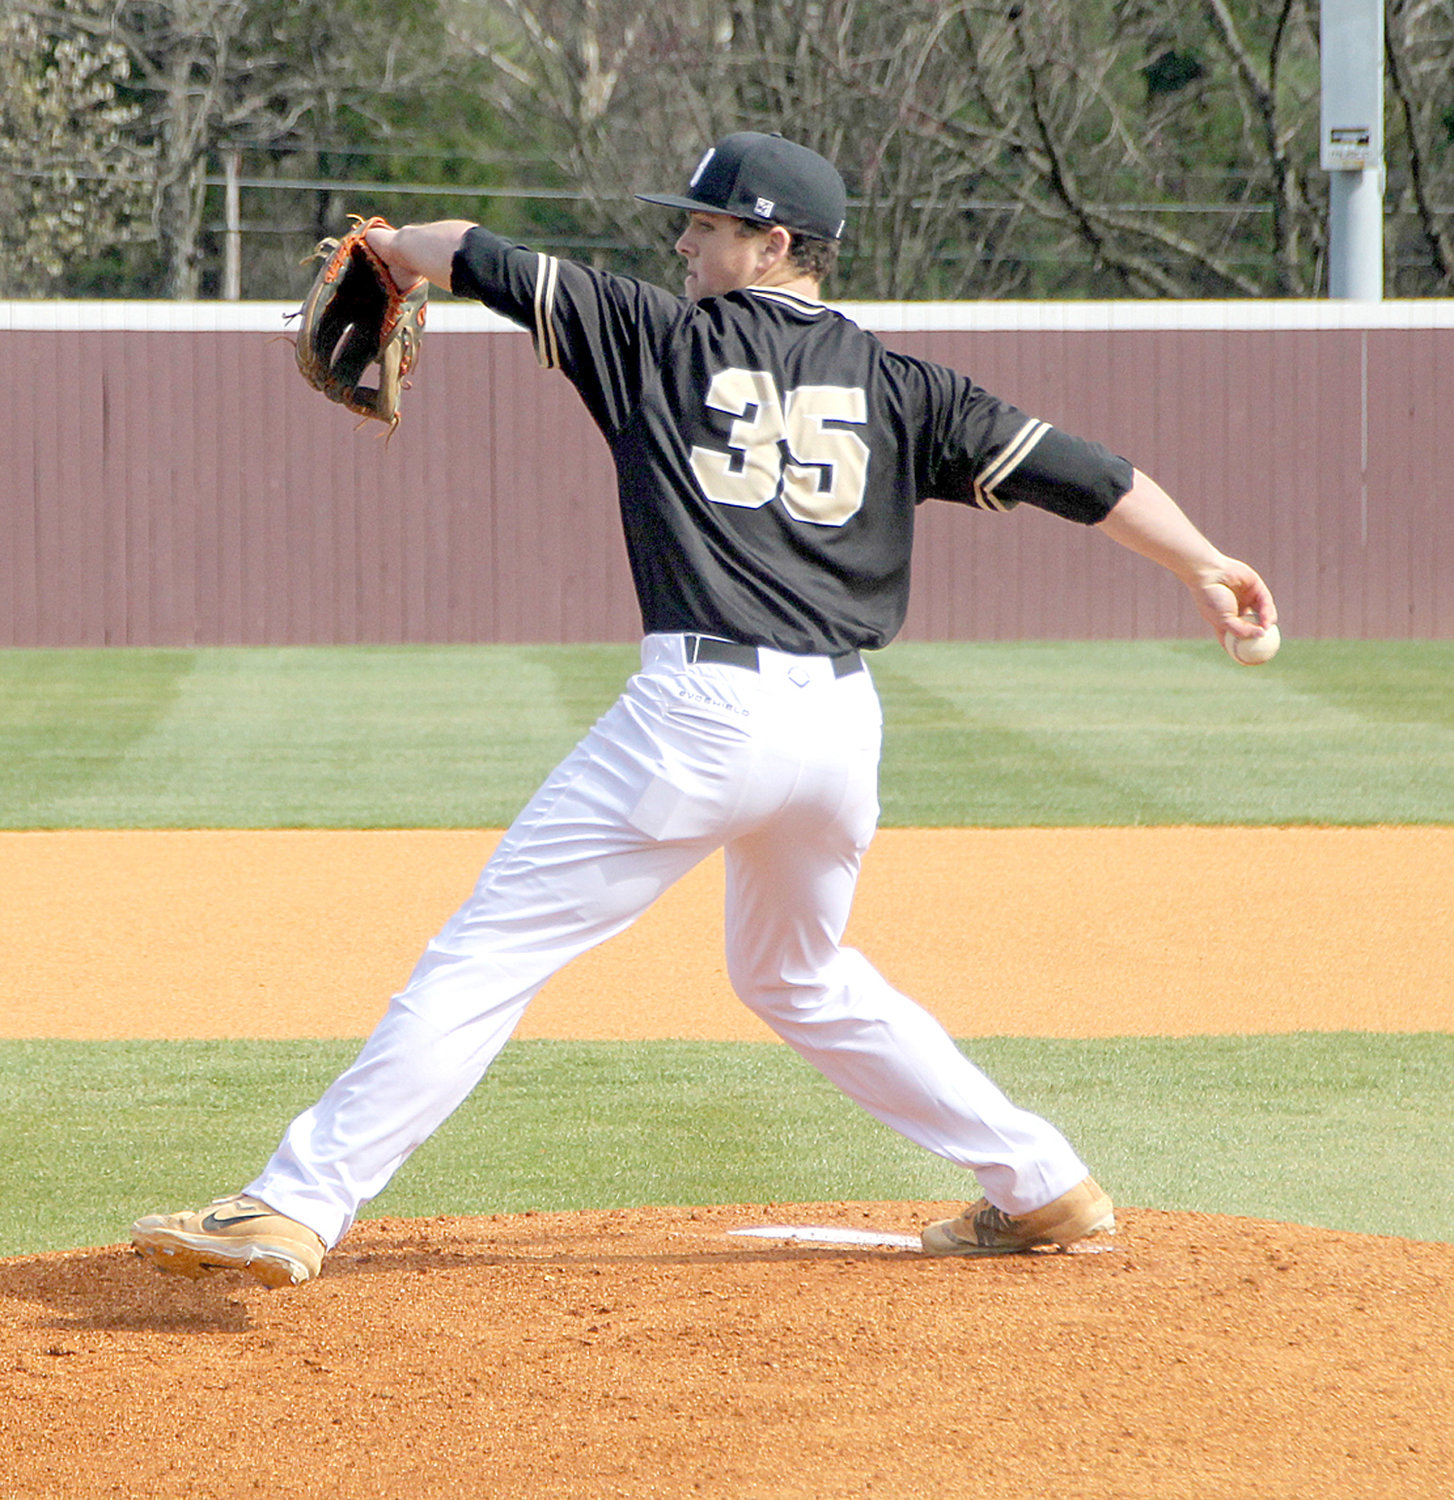 LEE UNIVERSITY commit Riley Black led Bradley Central to its first TSSAA State Tournament victory since 2007 in a 2-1 win over third-ranked Riverdale Tuesday at the Spring Fling opener in Murfreesboro.